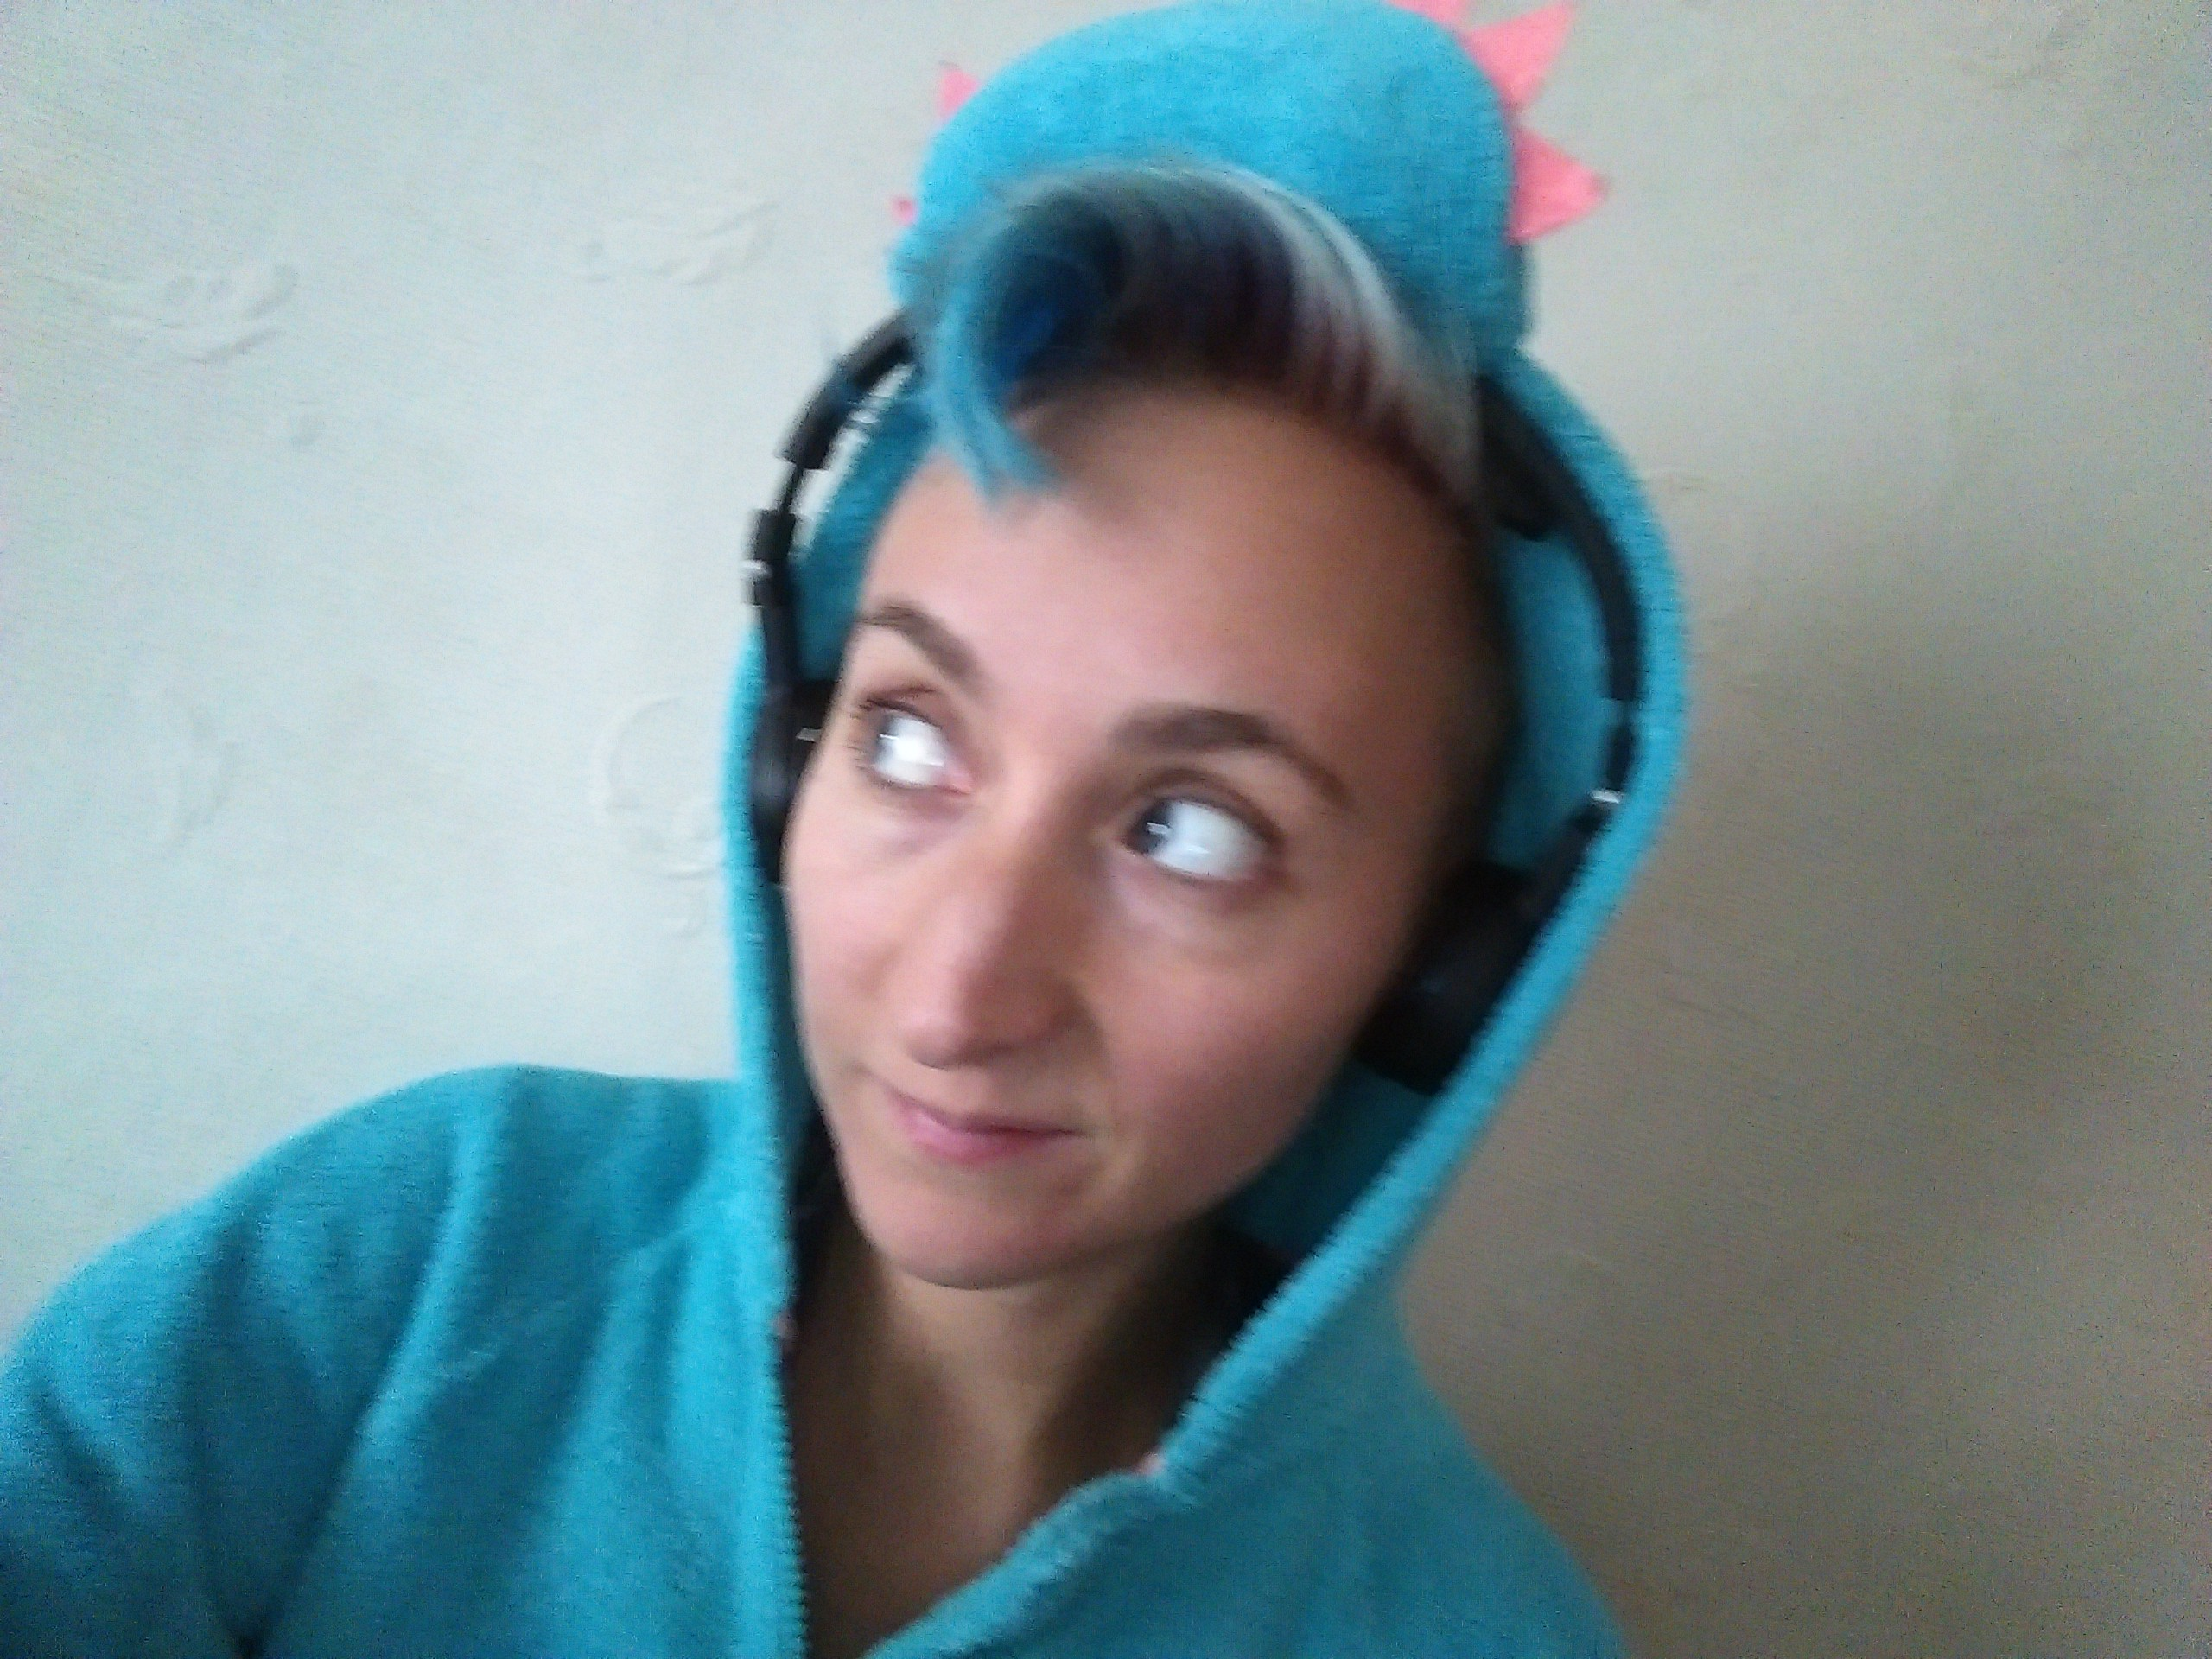 Person in blue dinosaur hood with wireless headphones and blue hair